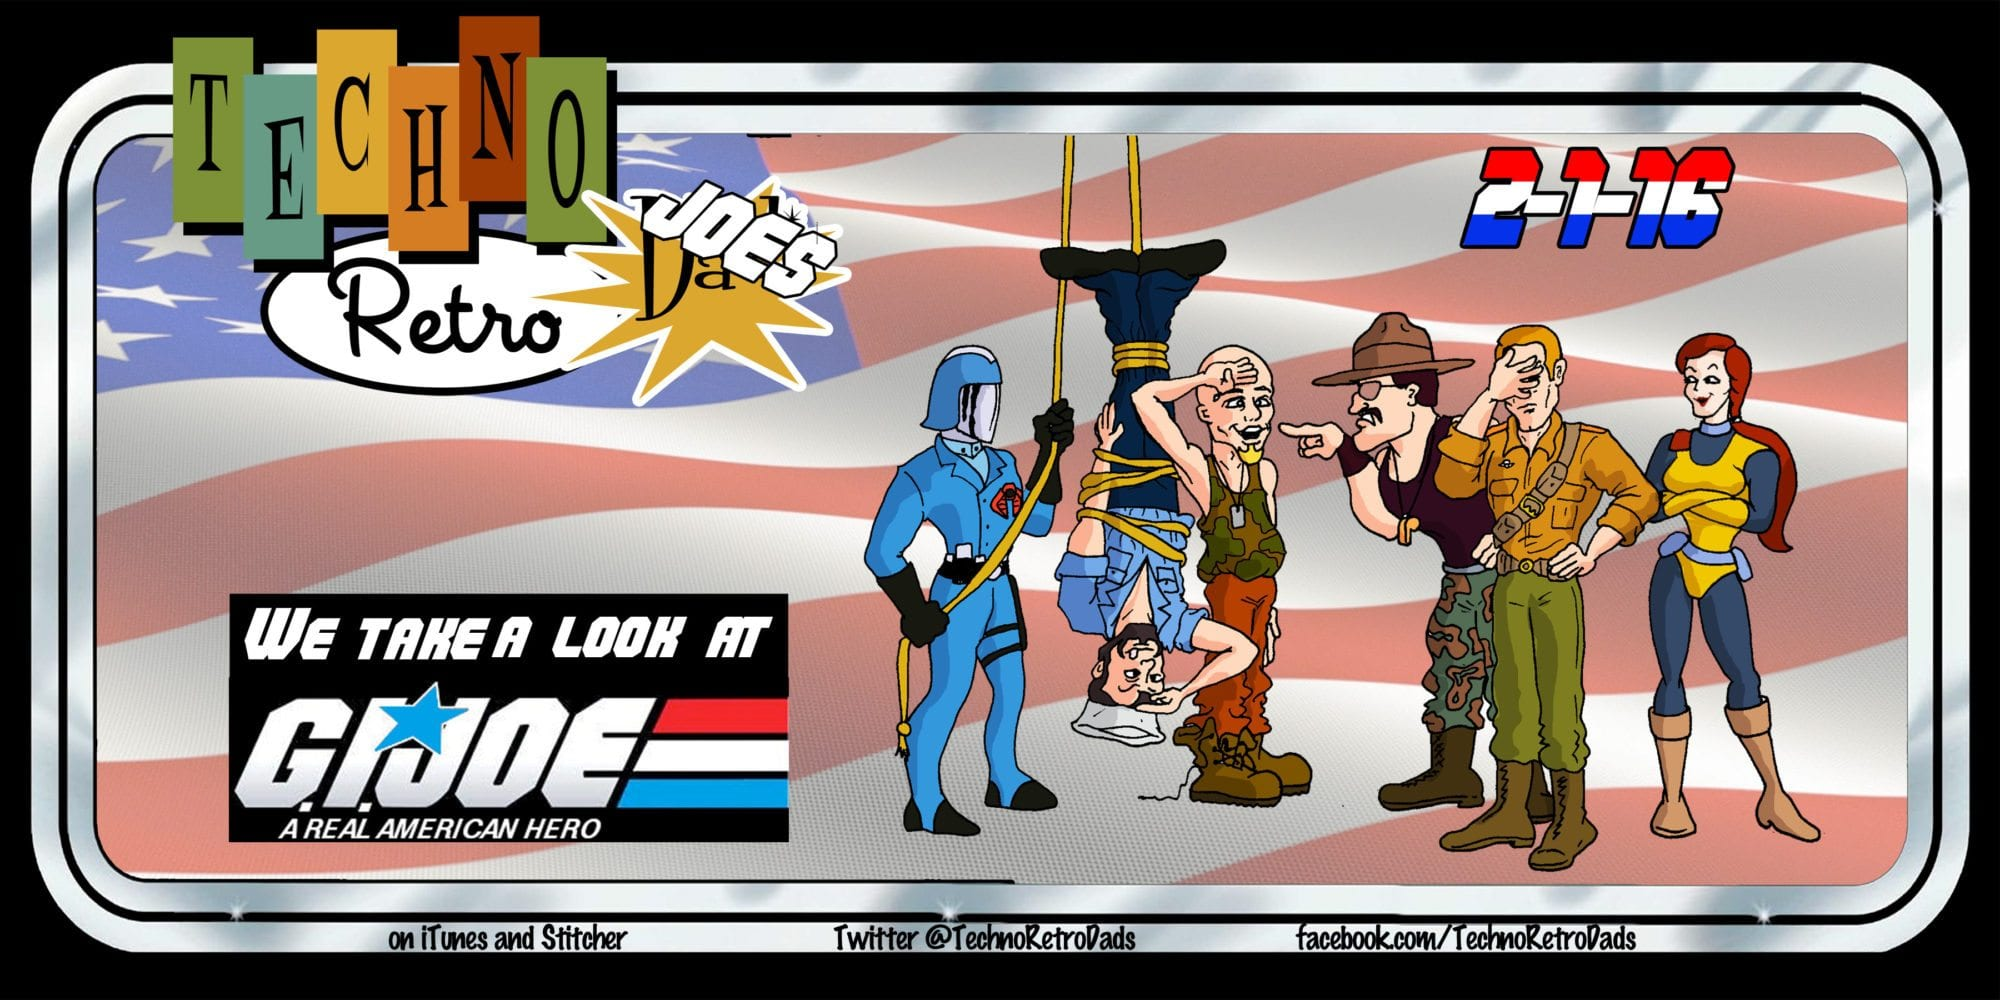 TechnoRetro Dads, G I Joe